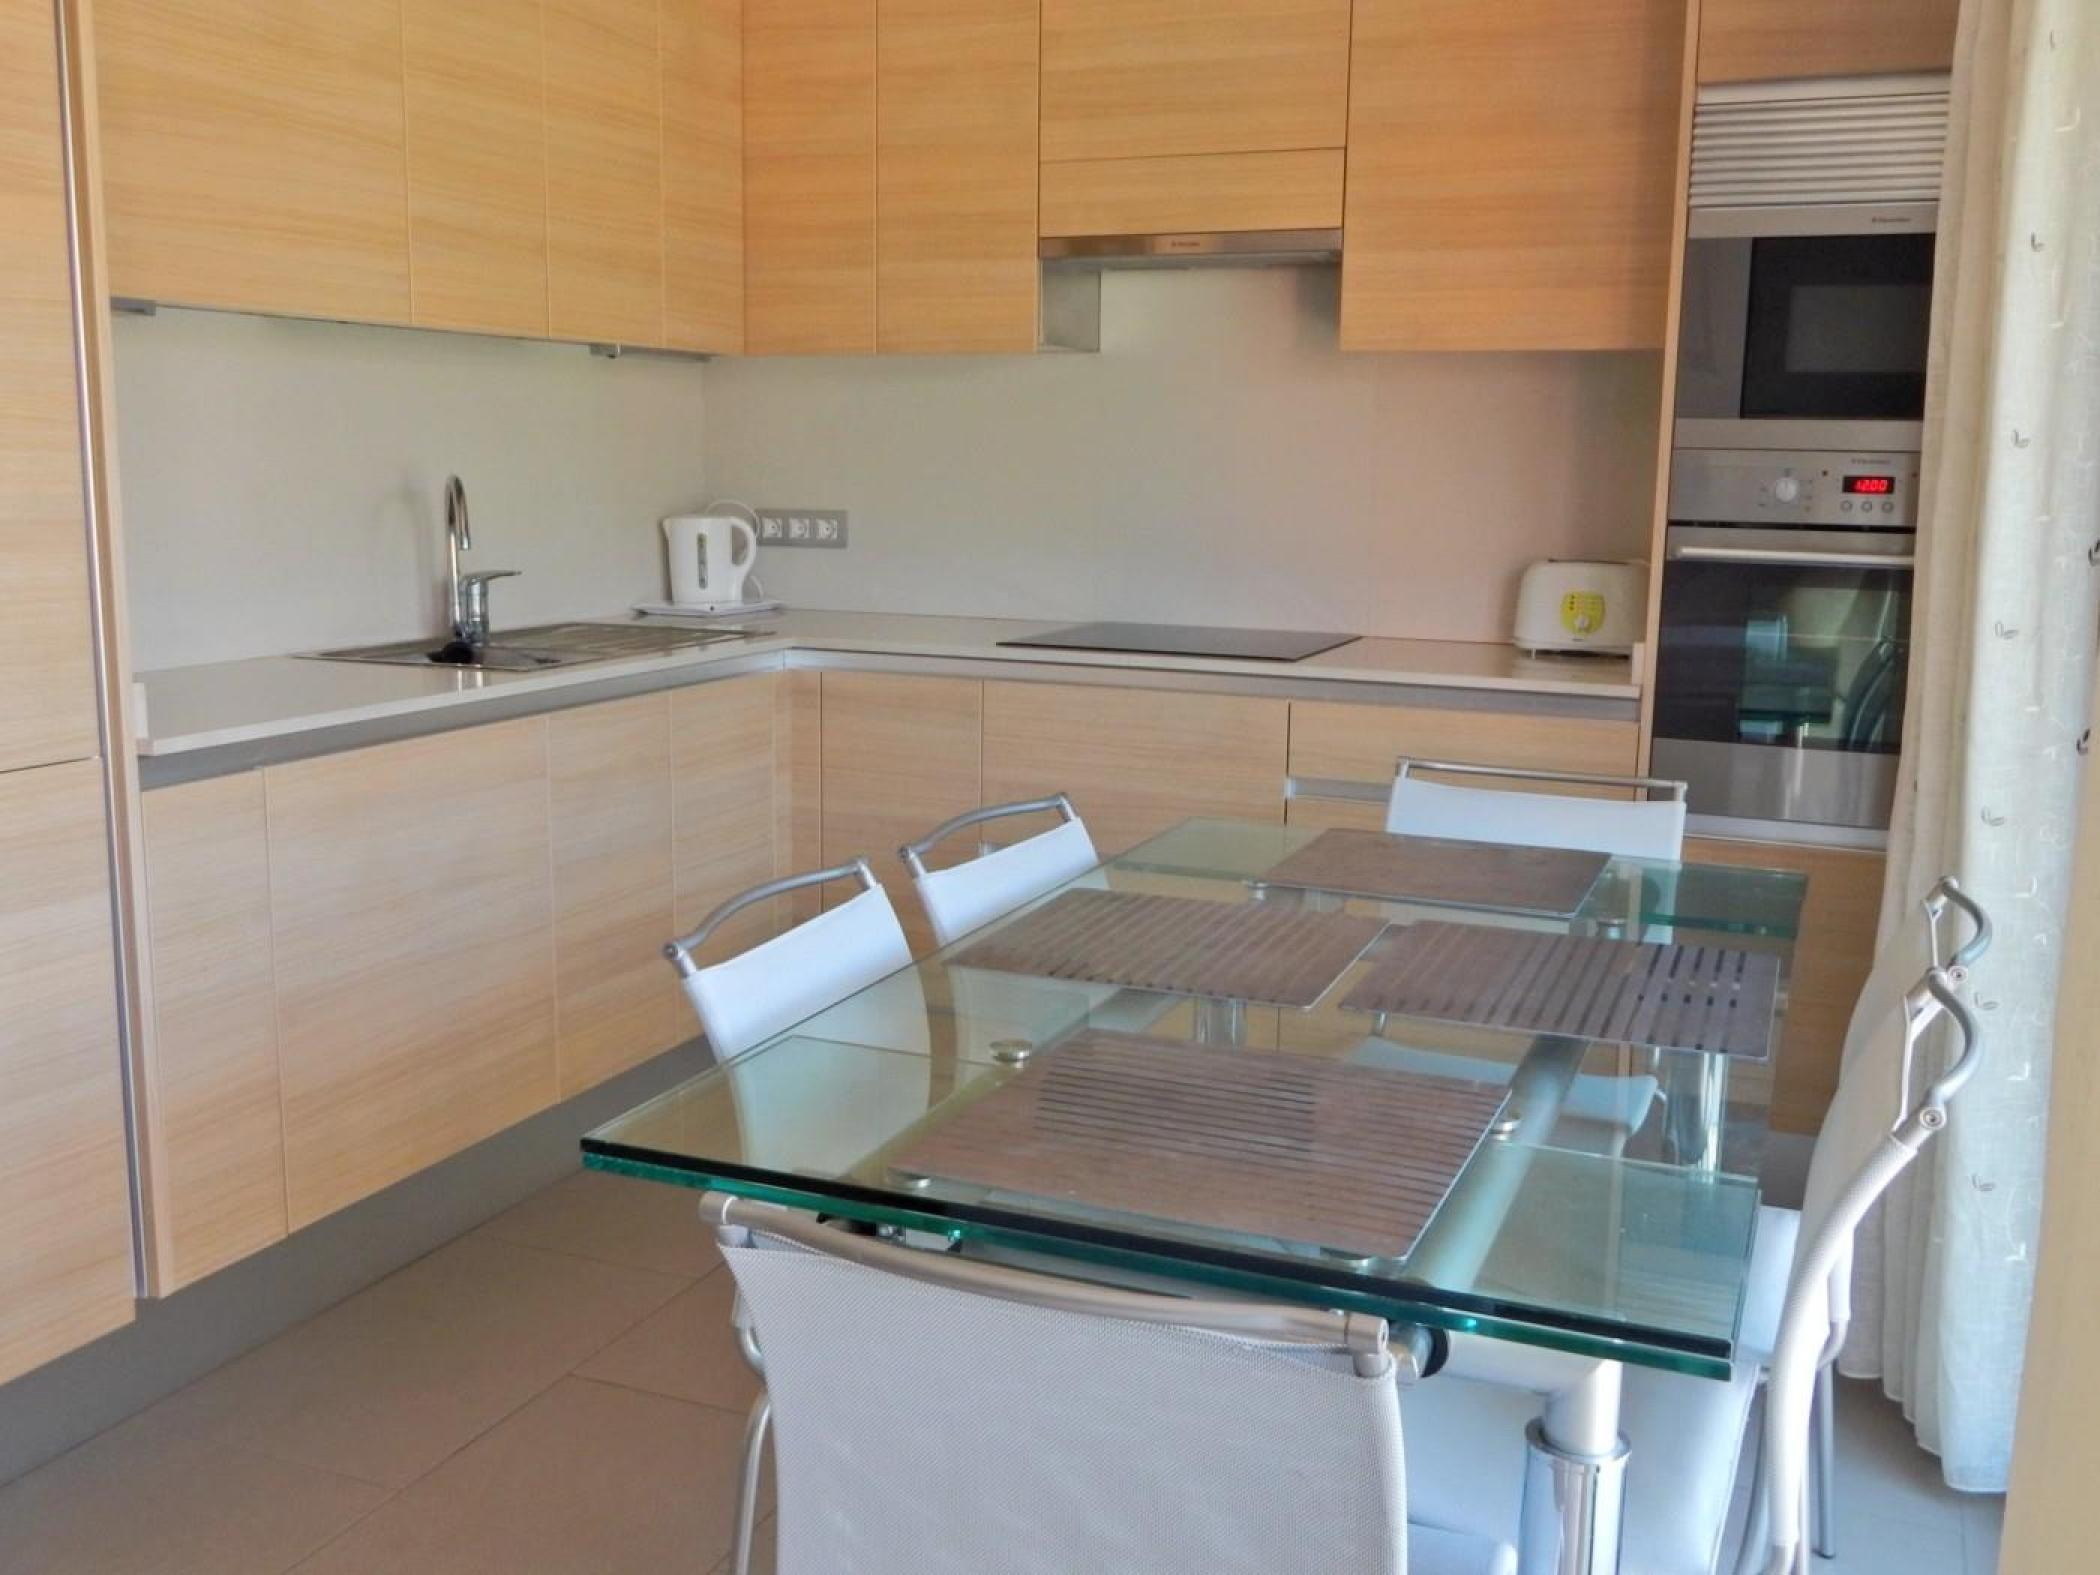 Rent Apartment in Platja d'Aro - Ground floor in front of the sea Ridaura BX4 - 16